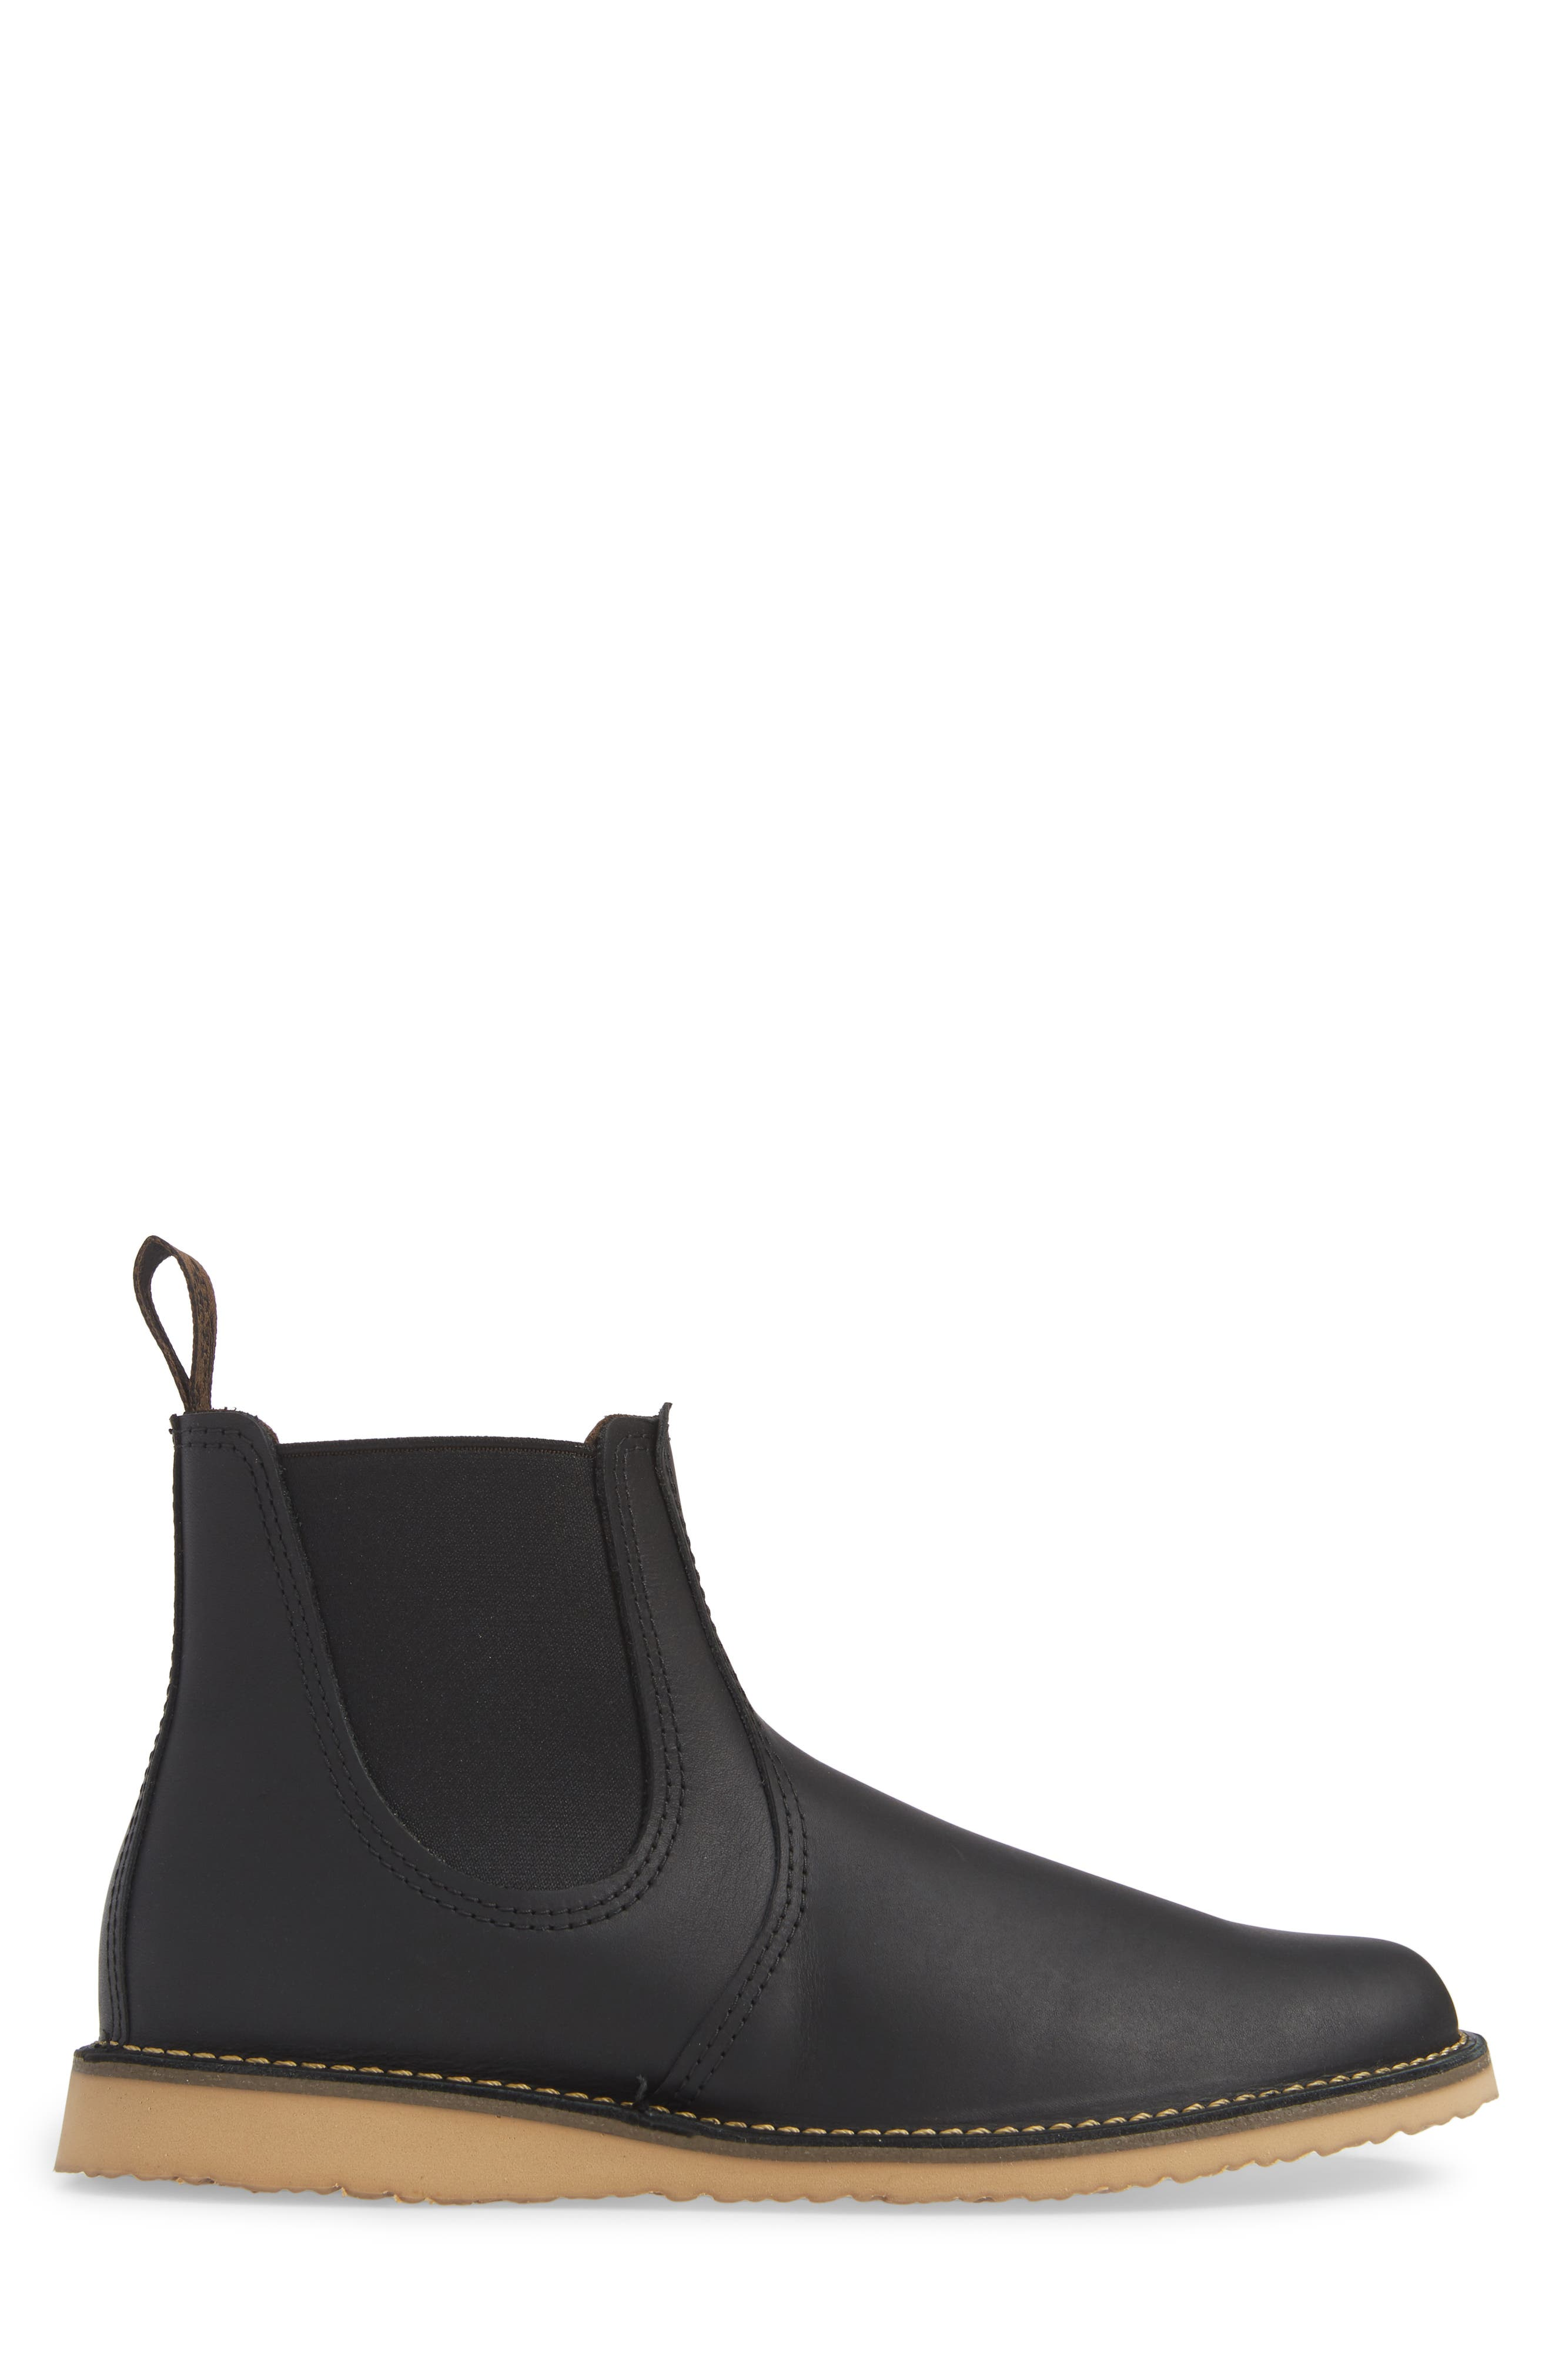 RED WING,                             Chelsea Boot,                             Alternate thumbnail 3, color,                             BLACK HARNESS LEATHER